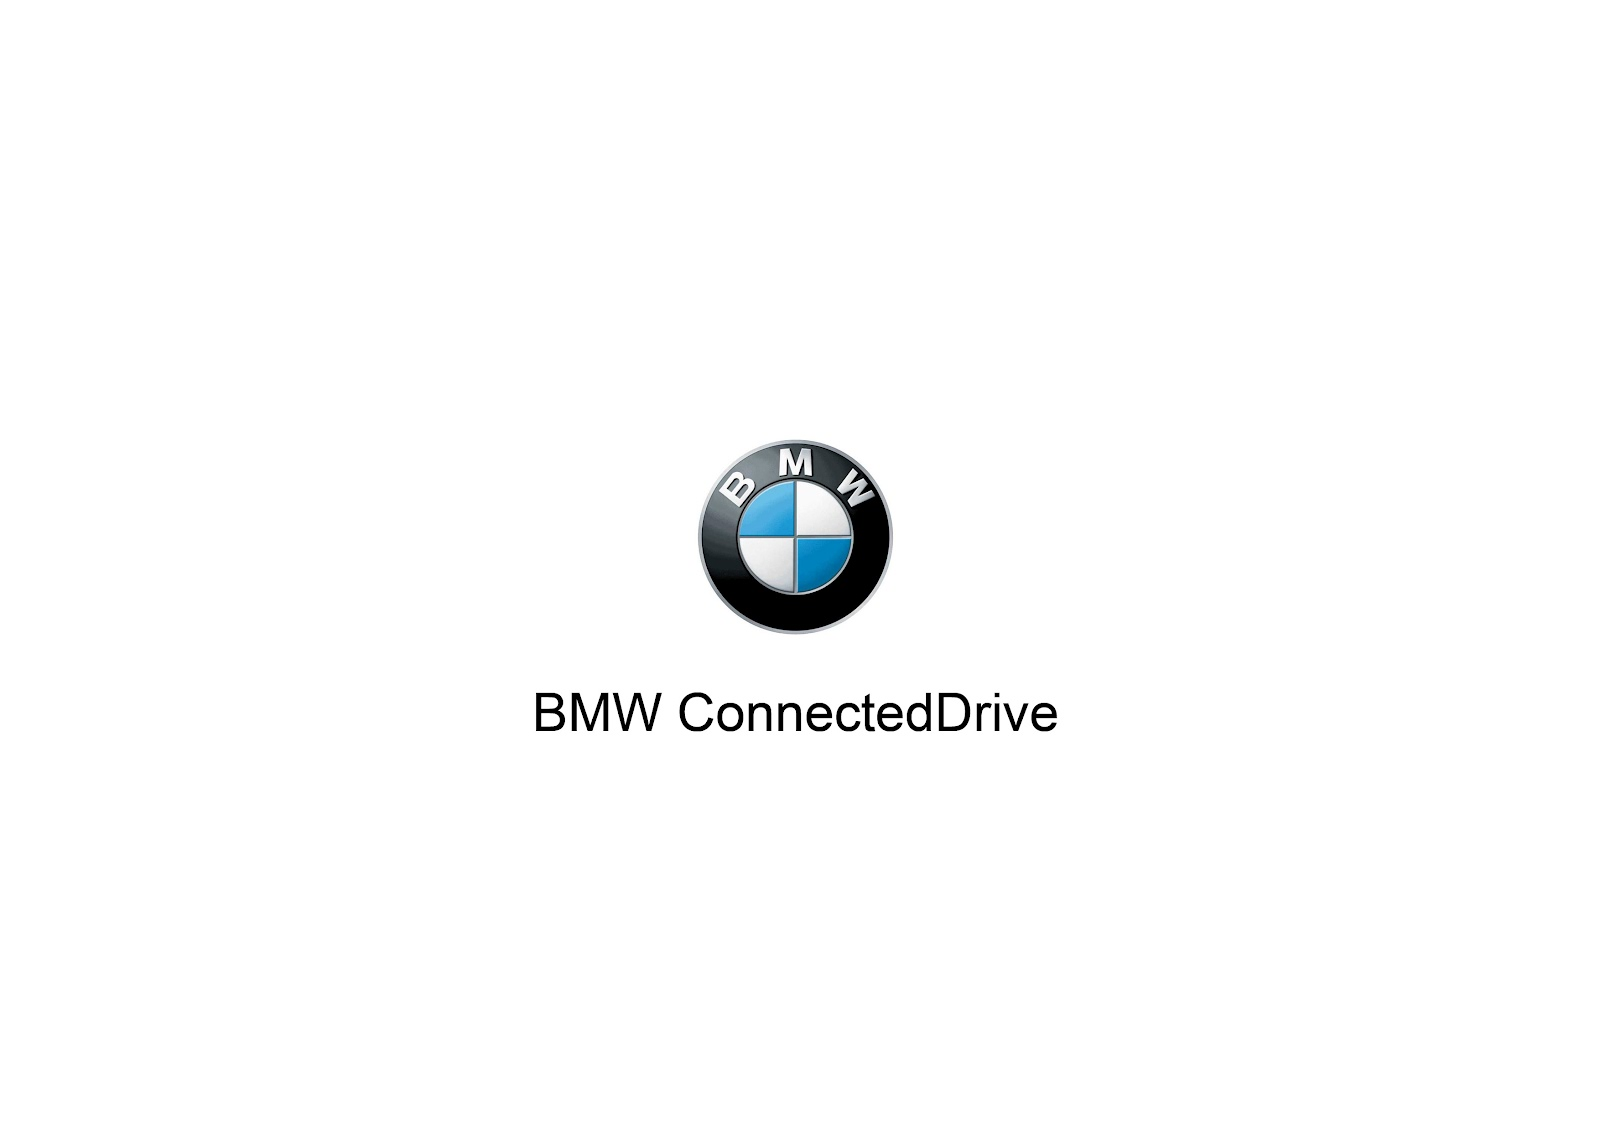 sparoow designs design observation of bmw connected drive. Black Bedroom Furniture Sets. Home Design Ideas